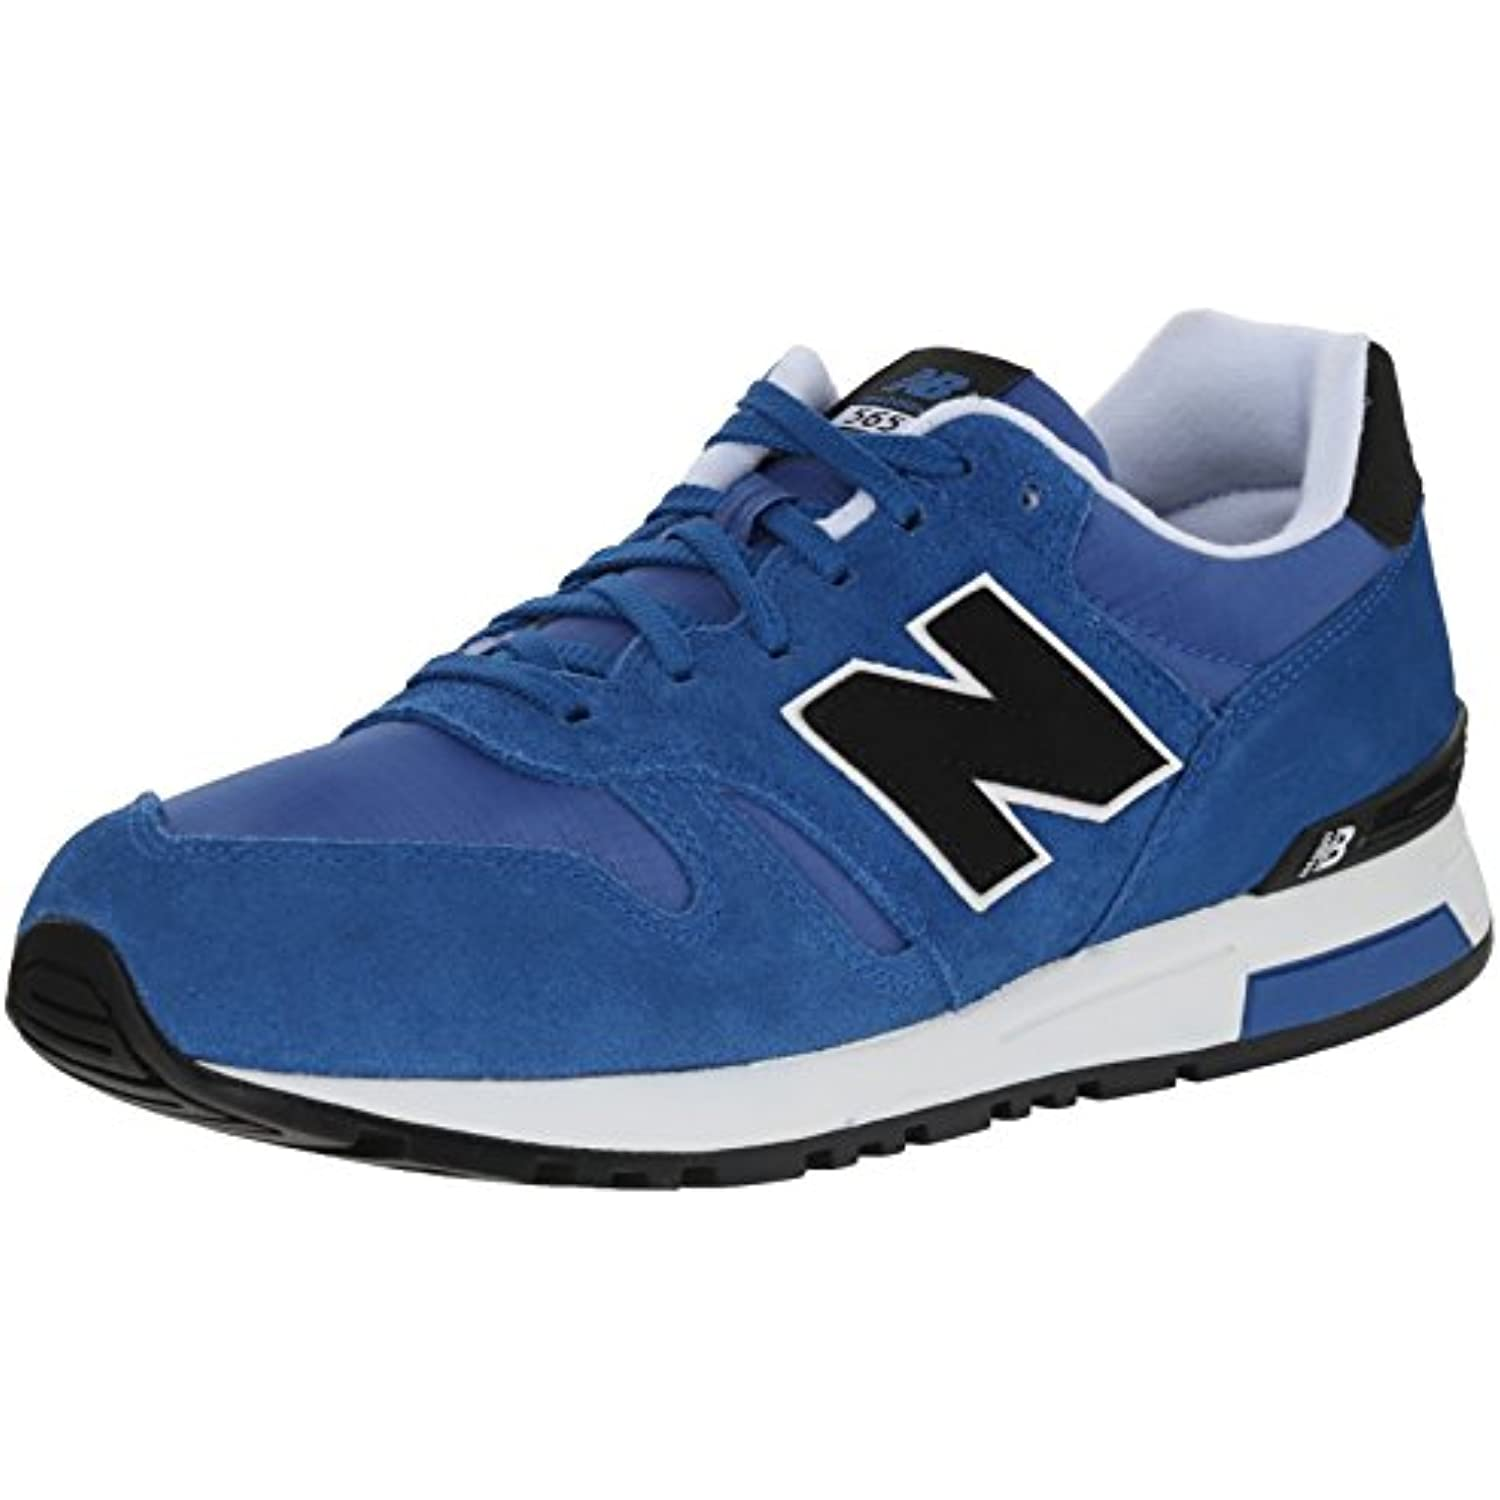 New  Balance - Nbml565, Uomo  New Parent 67b2ee